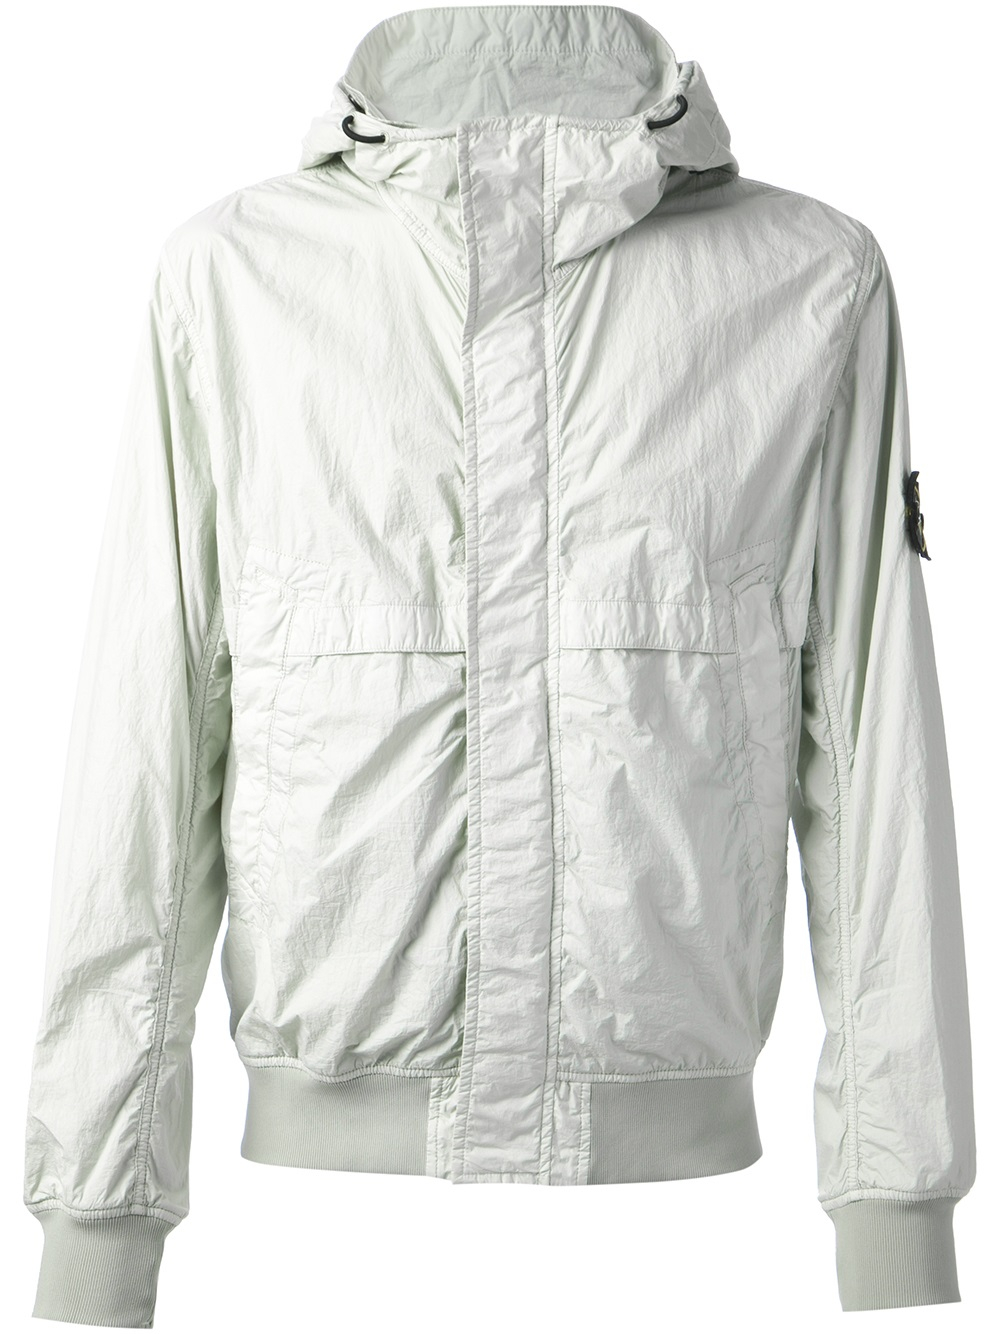 Mens White Windbreaker Jacket - Best Jacket 2017